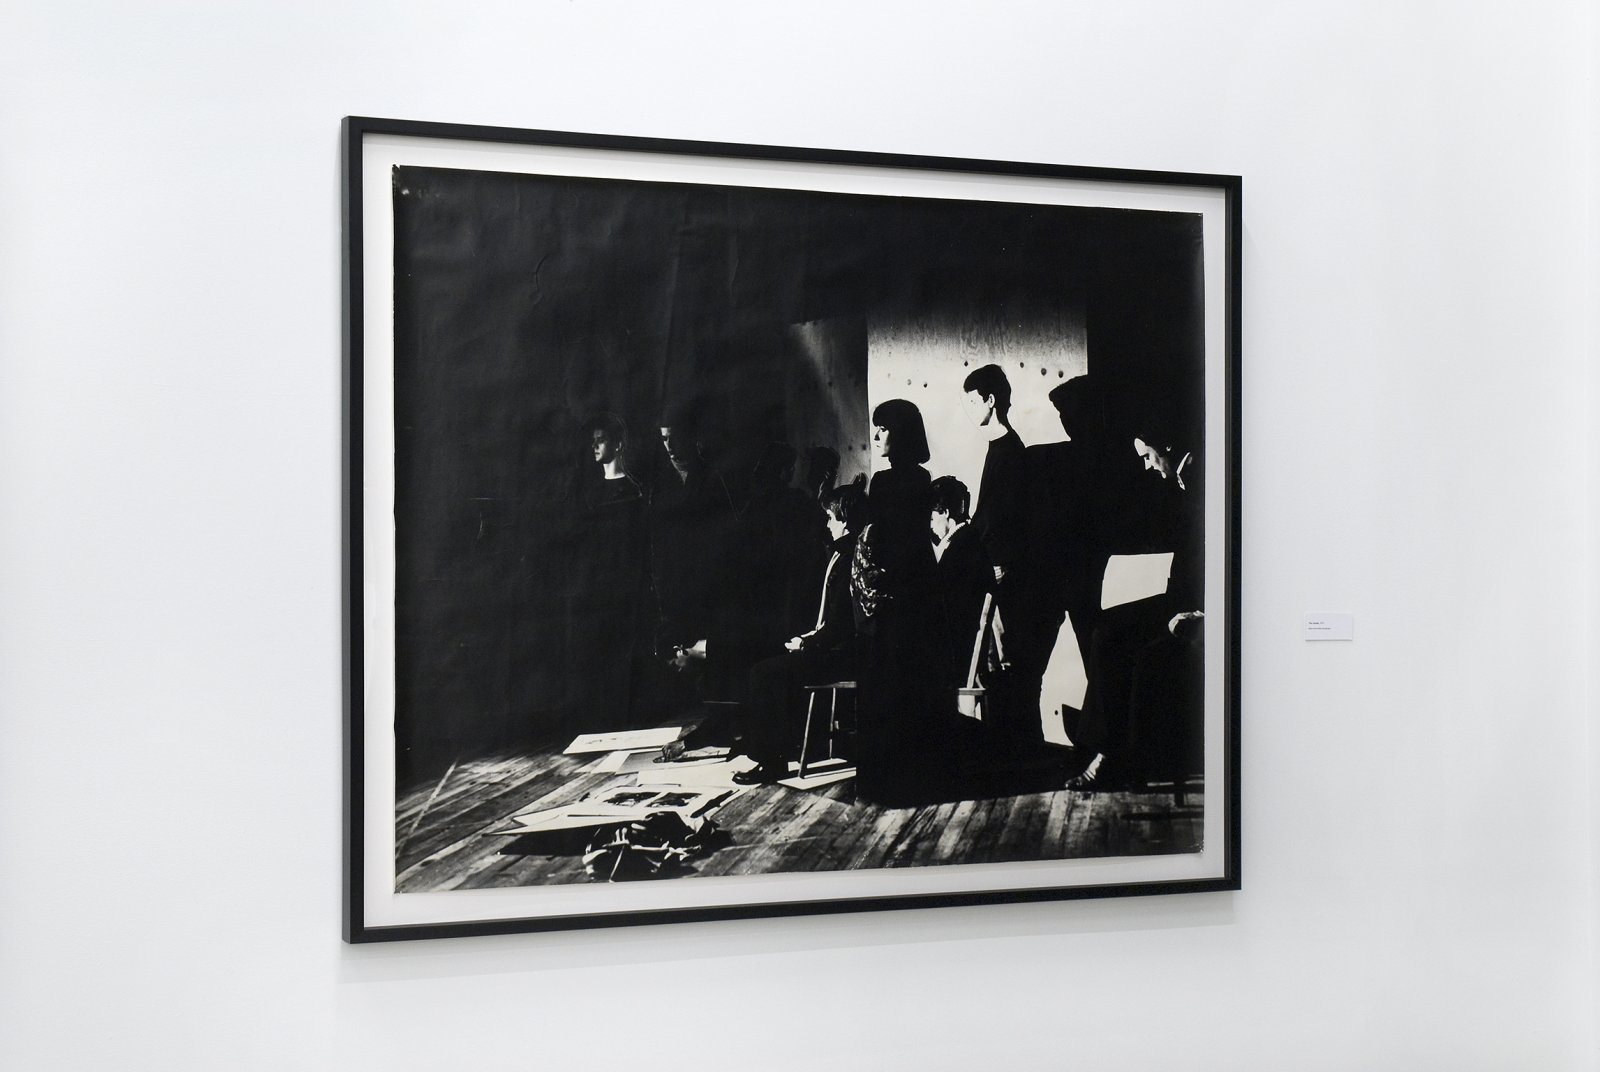 Ian Wallace, The Studio, 1977, black and white photograph 45 x 57 in. (113 x 145 cm) by Ian Wallace